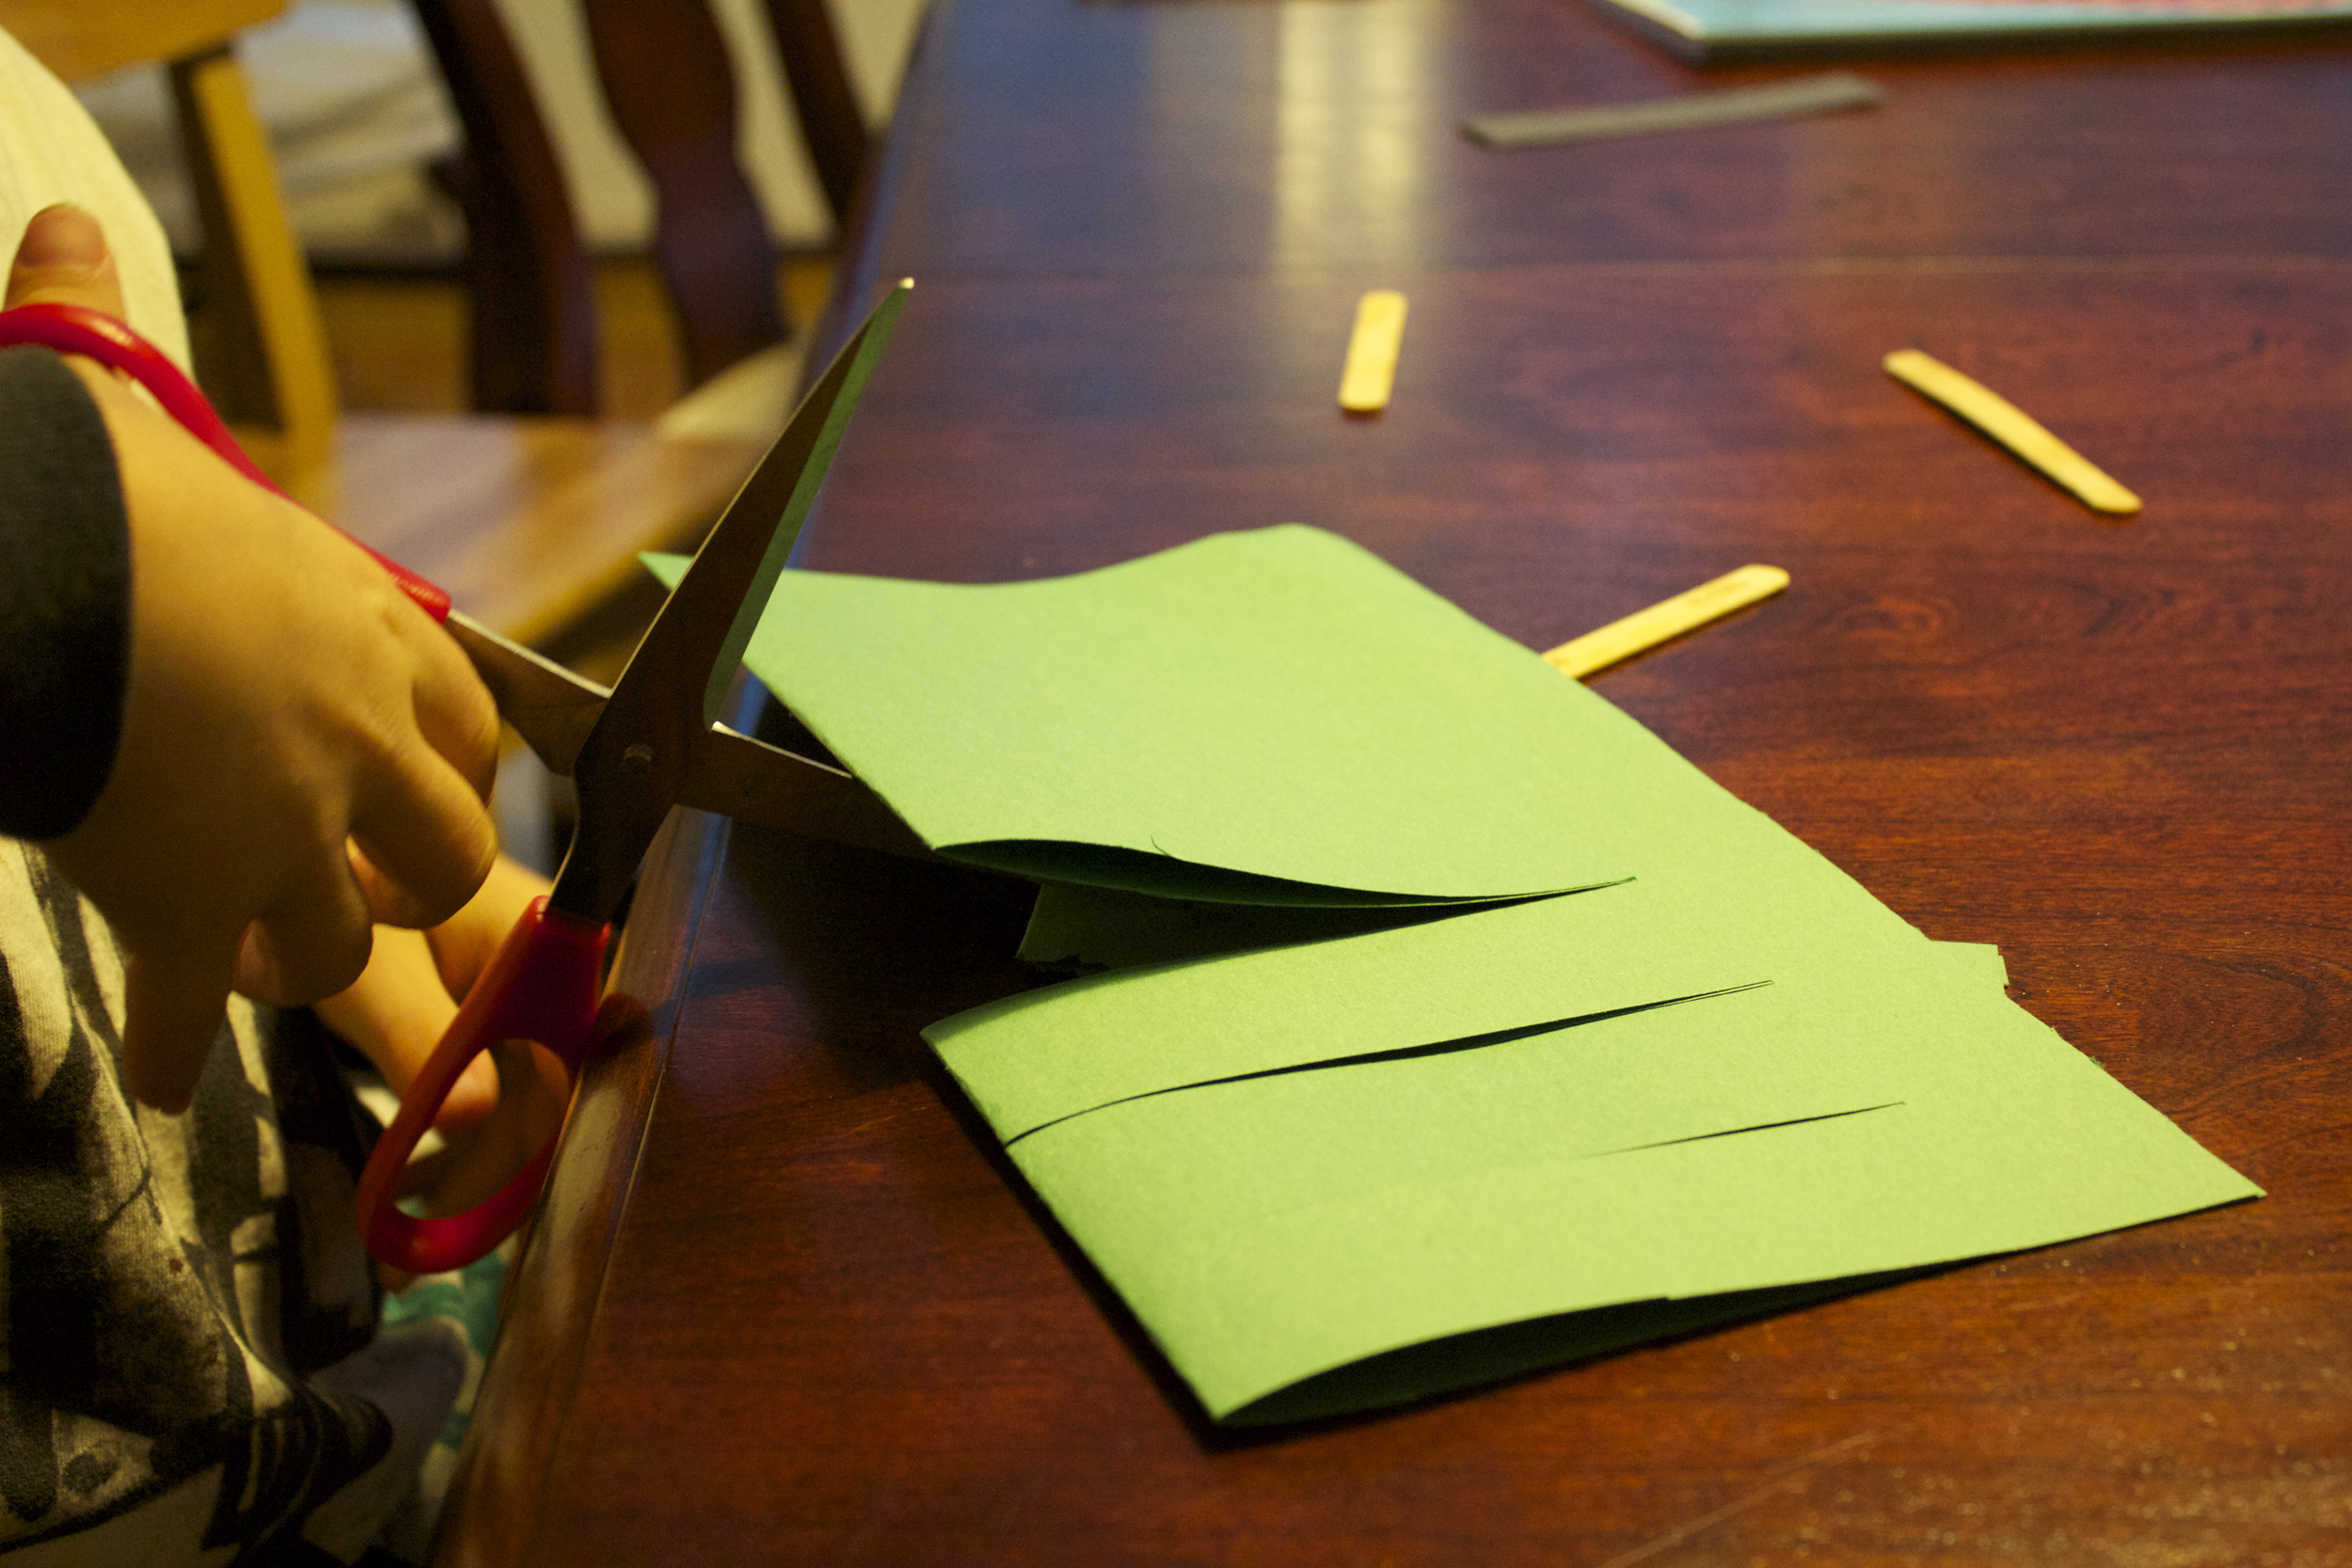 Cut slits into the paper from folded end until about an inch to the open end.